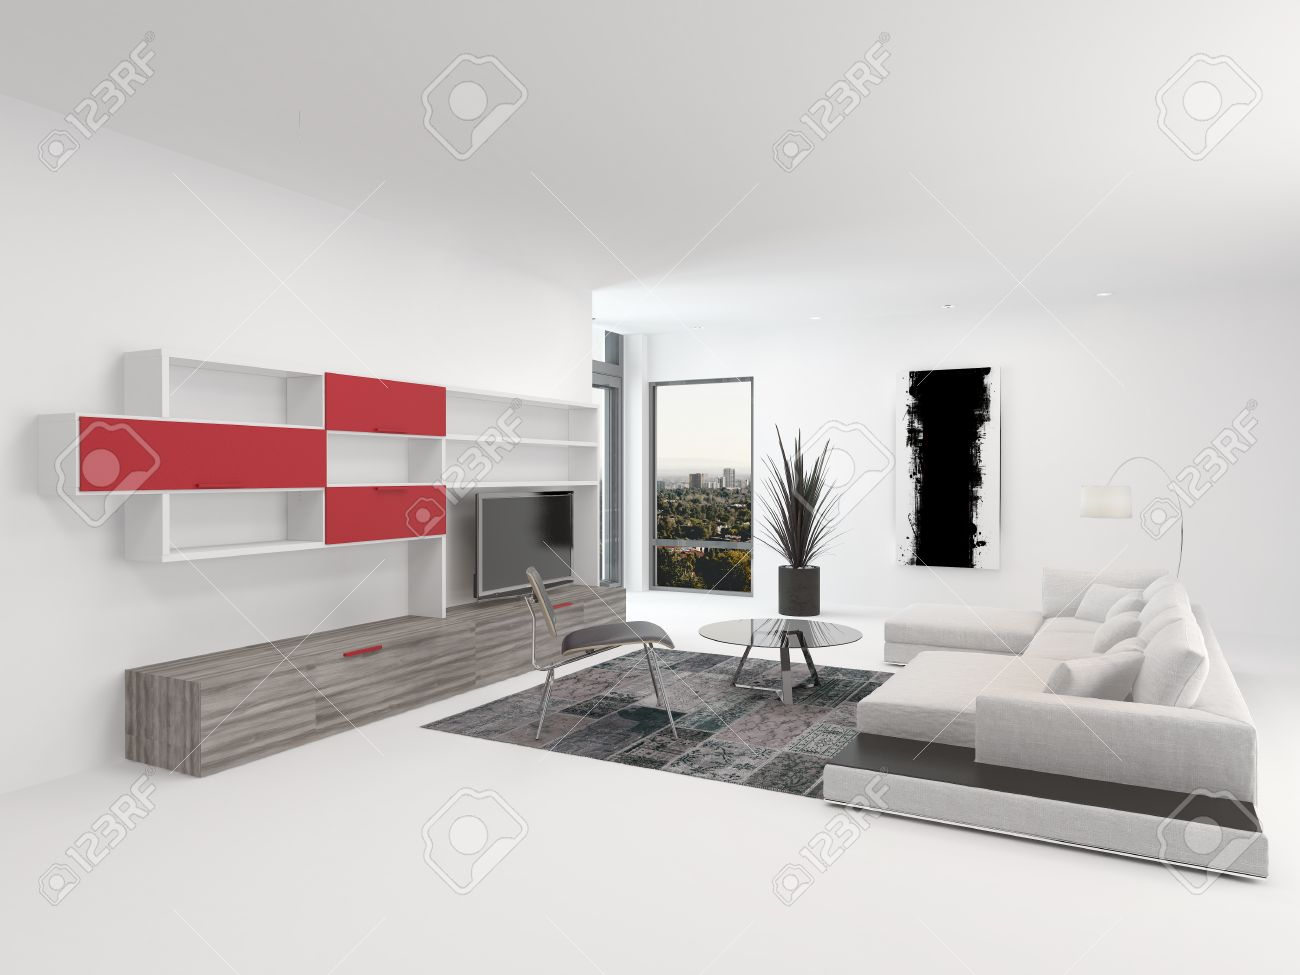 Upmarket Modern Living Room Interior With Vivid Red Accents And ...